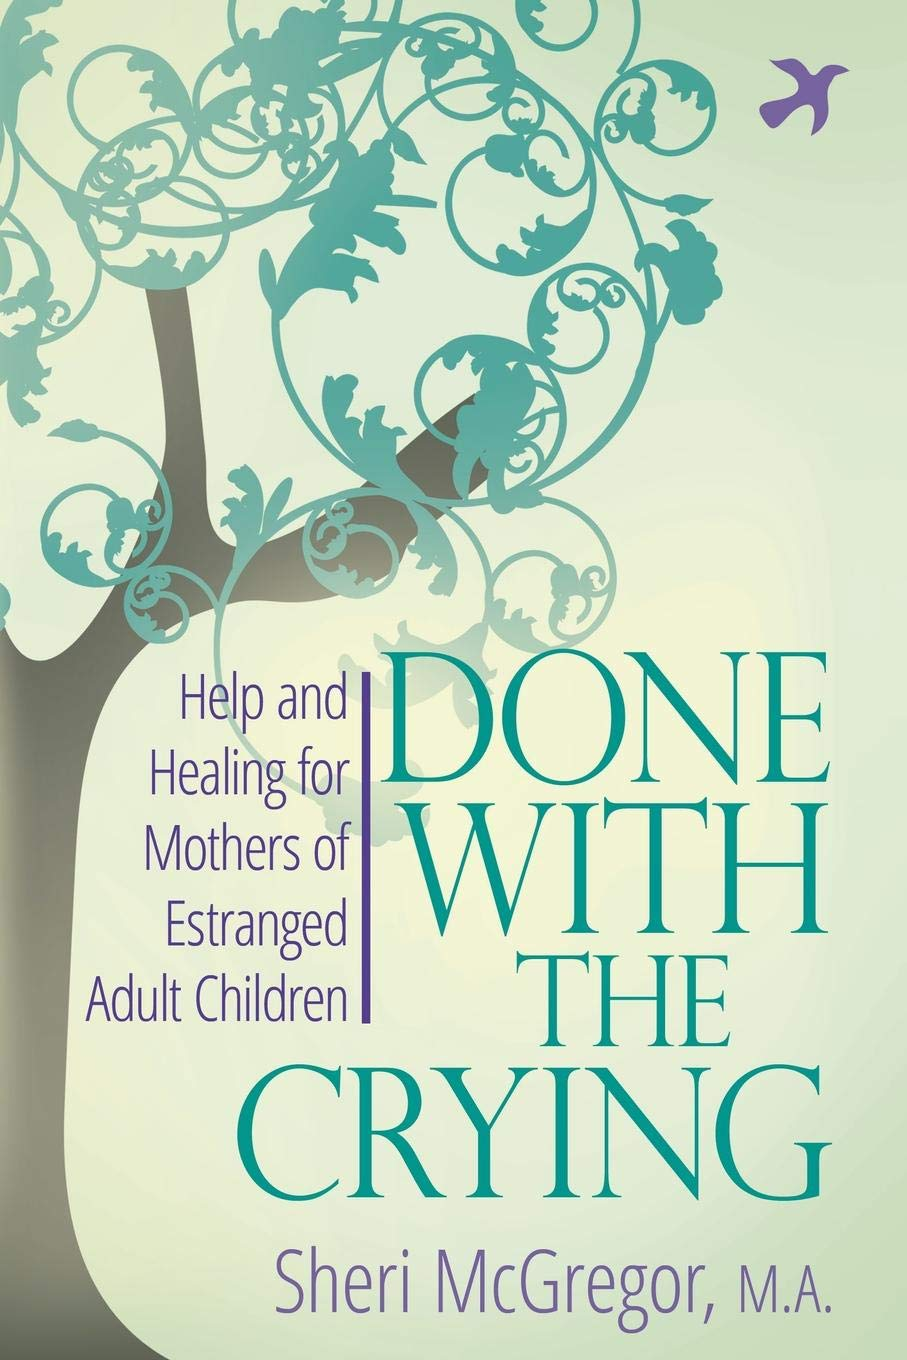 What Can Be Done To Help Parents Of >> Done With The Crying Help And Healing For Mothers Of Estranged